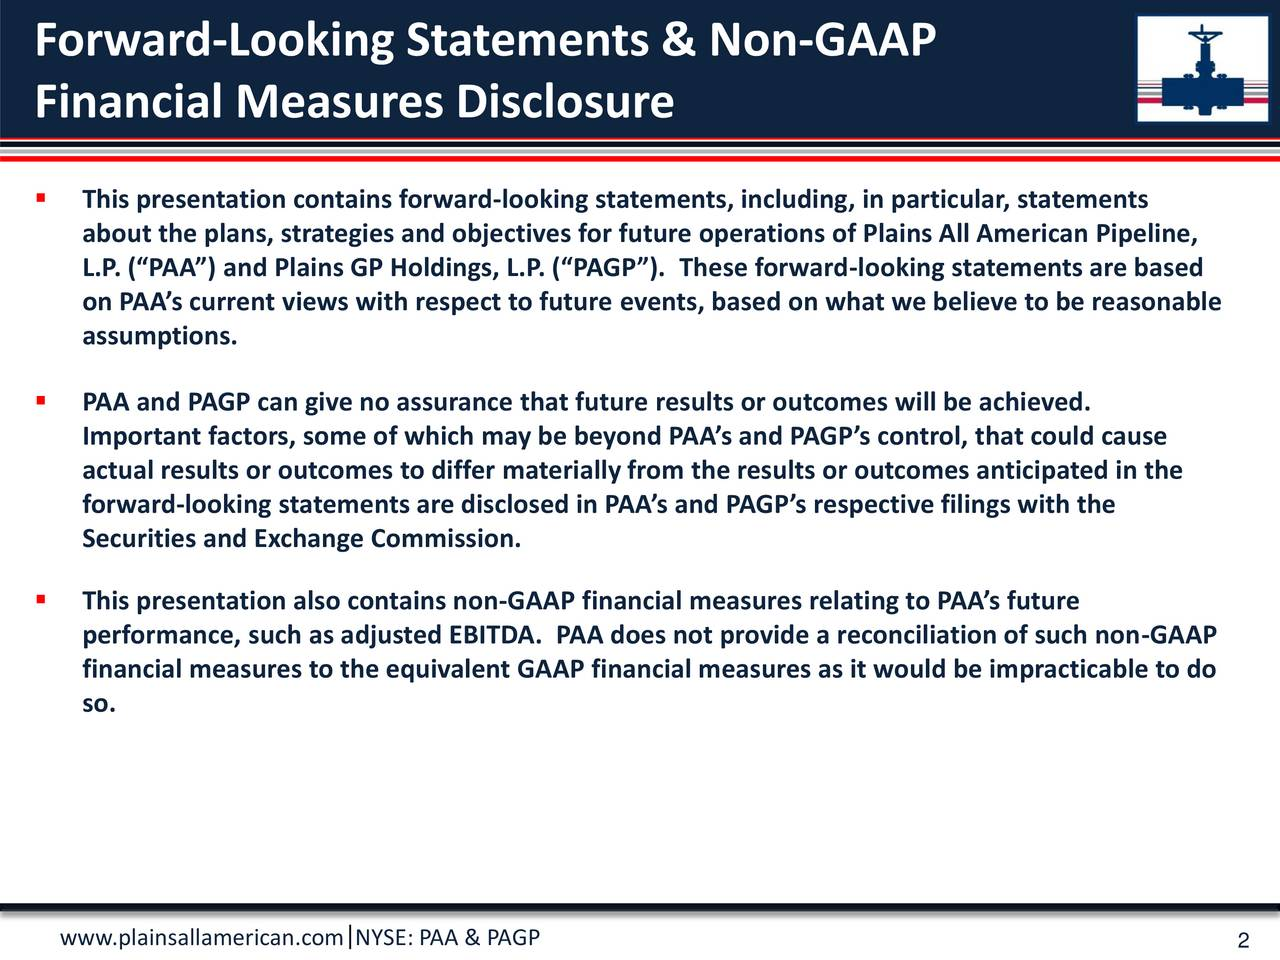 Financial Measures Disclosure This presentation contains forward-looking statements, including, in particular, statements about the plans, strategies and objectives for future operations of Plains All American Pipeline, L.P. (PAA) and Plains GP Holdings, L.P. (PAGP). These forward-looking statements are based on PAAs current views with respect to future events, based on what we believe to be reasonable assumptions. PAA and PAGP can give no assurance that future results or outcomes will be achieved. Important factors, some of which may be beyond PAAs and PAGPs control, that could cause actual results or outcomes to differ materially from the results or outcomes anticipated in the forward-looking statements are disclosed in PAAs and PAGPs respective filings with the Securities and Exchange Commission. This presentation also contains non-GAAP financial measures relating to PAAs future performance, such as adjusted EBITDA. PAA does not provide a reconciliation of such non-GAAP financial measures to the equivalent GAAP financial measures as it would be impracticable to do so. www.plainsallamerican.com NYSE: PAA & PAGP